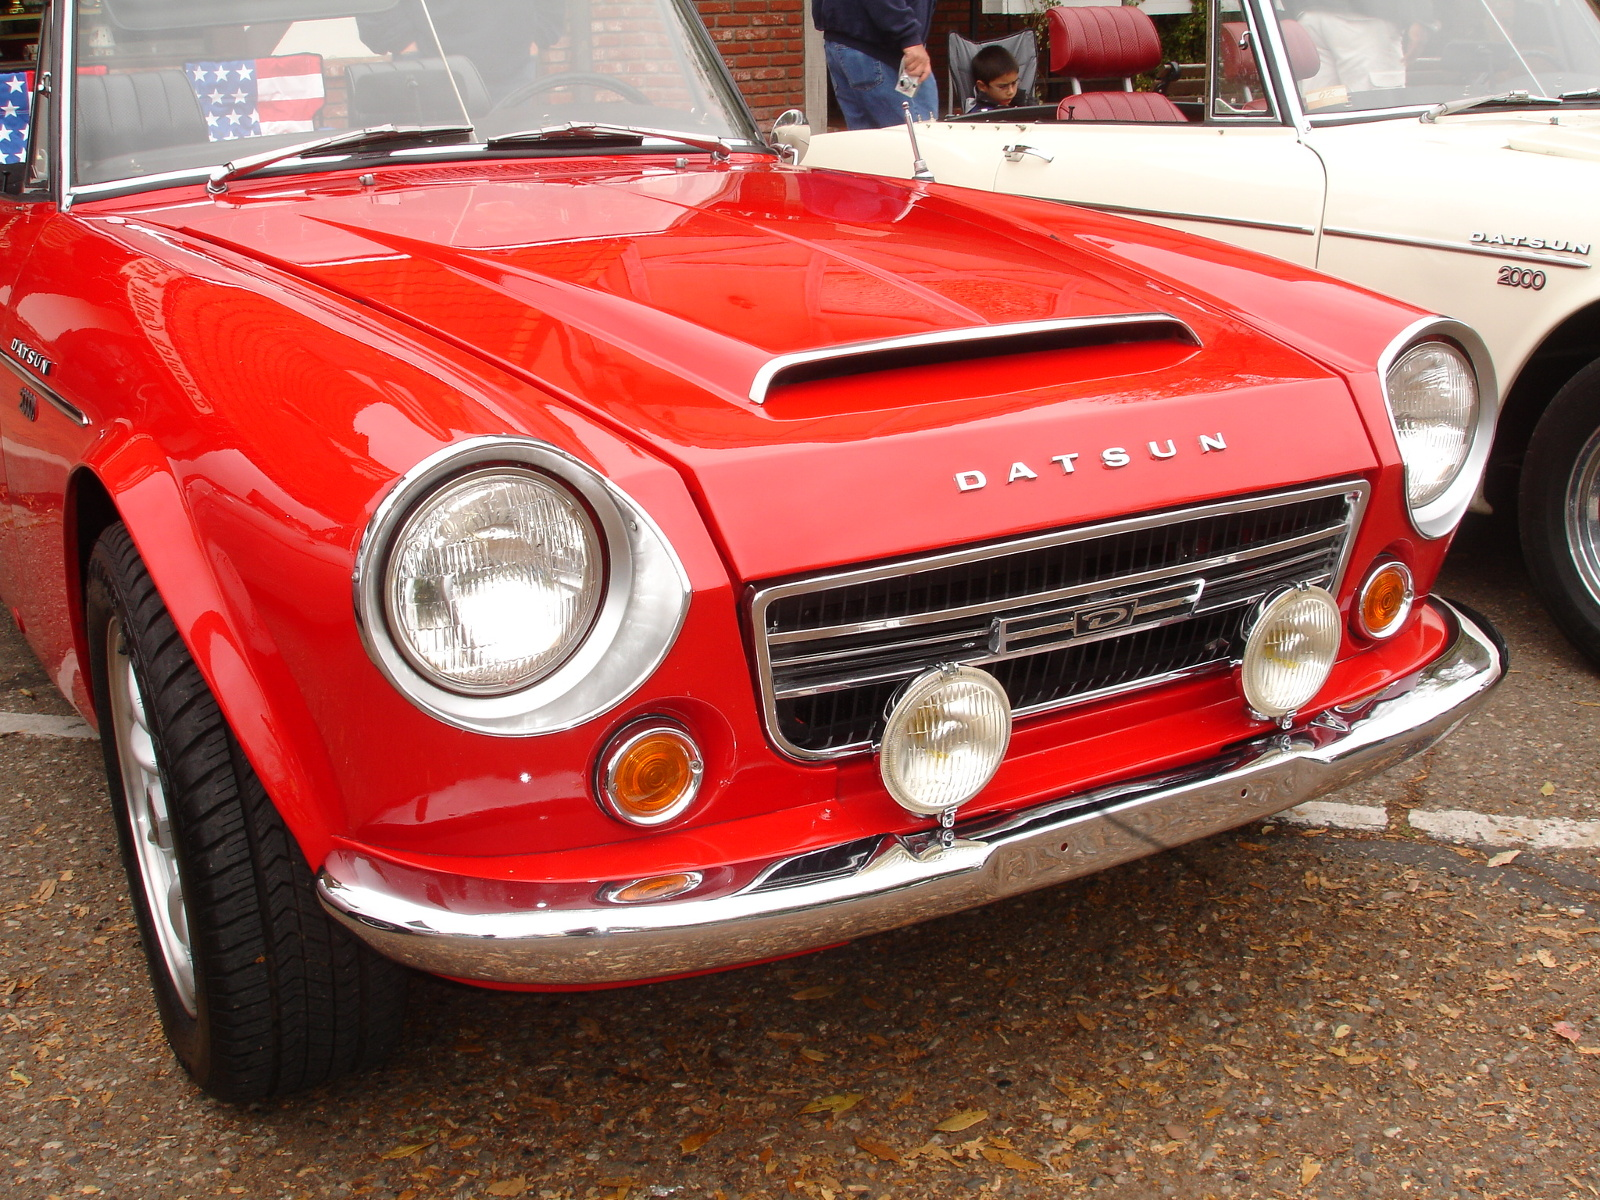 Datsun Sports Tech Wiki Techsection 2000 Wiring Diagram Fog Lights Everwing Were Optional The Came In A Number Of Variations Mounting Base For Different Model Datsuns